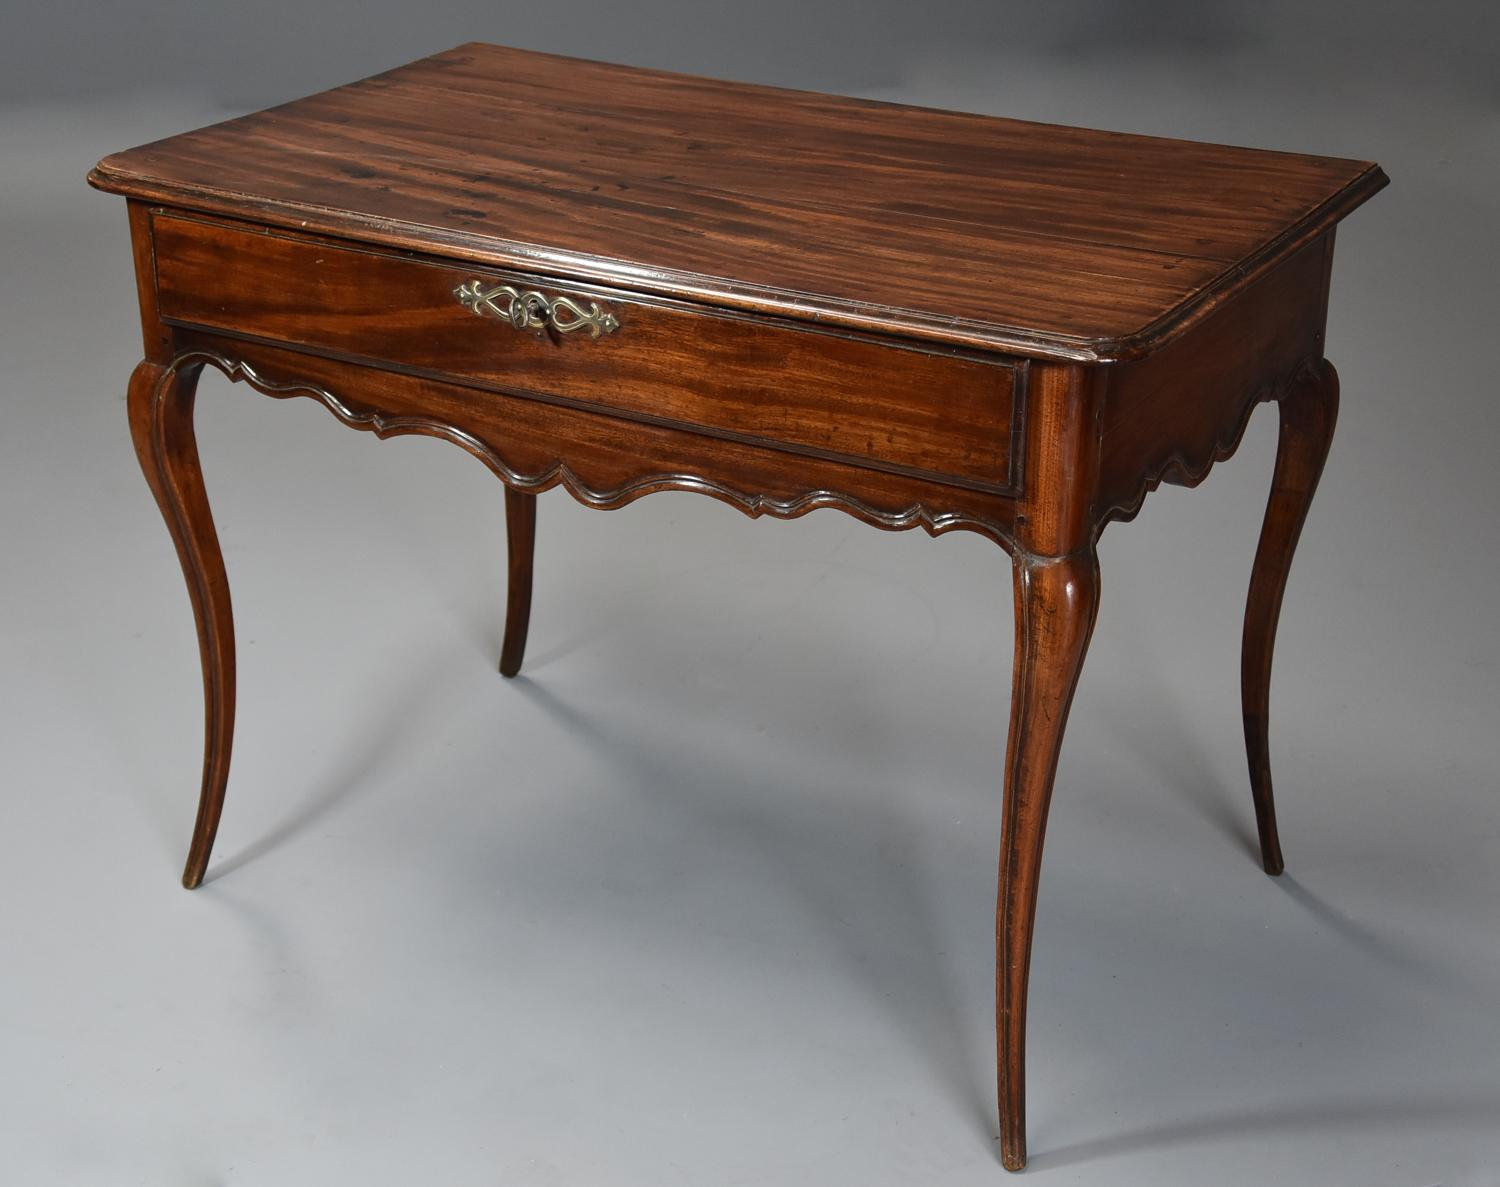 Late 18th century French walnut side table with superb rich patina